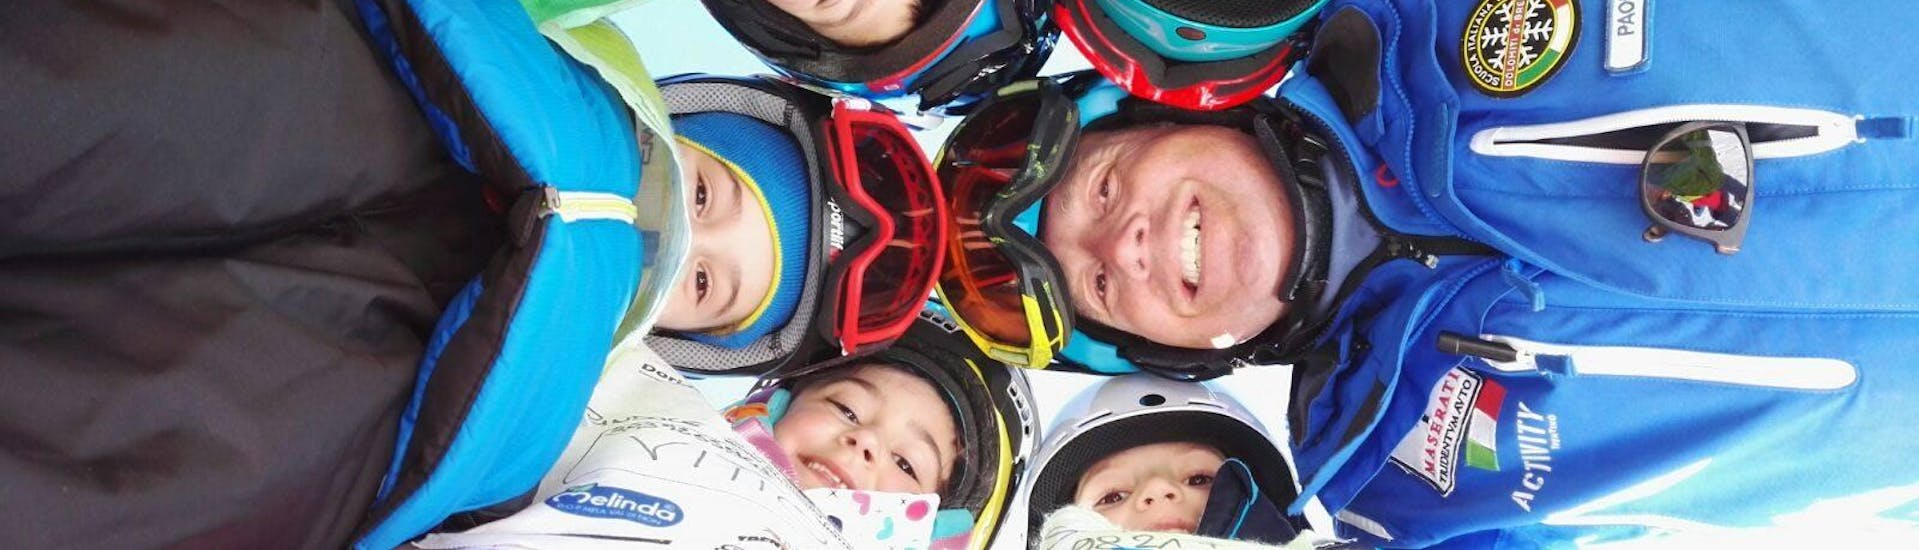 Kids and ski instructor taking a picture in Andalo during one of the Kids Ski Lessons (6-14 y.) for Advanced Skiers.